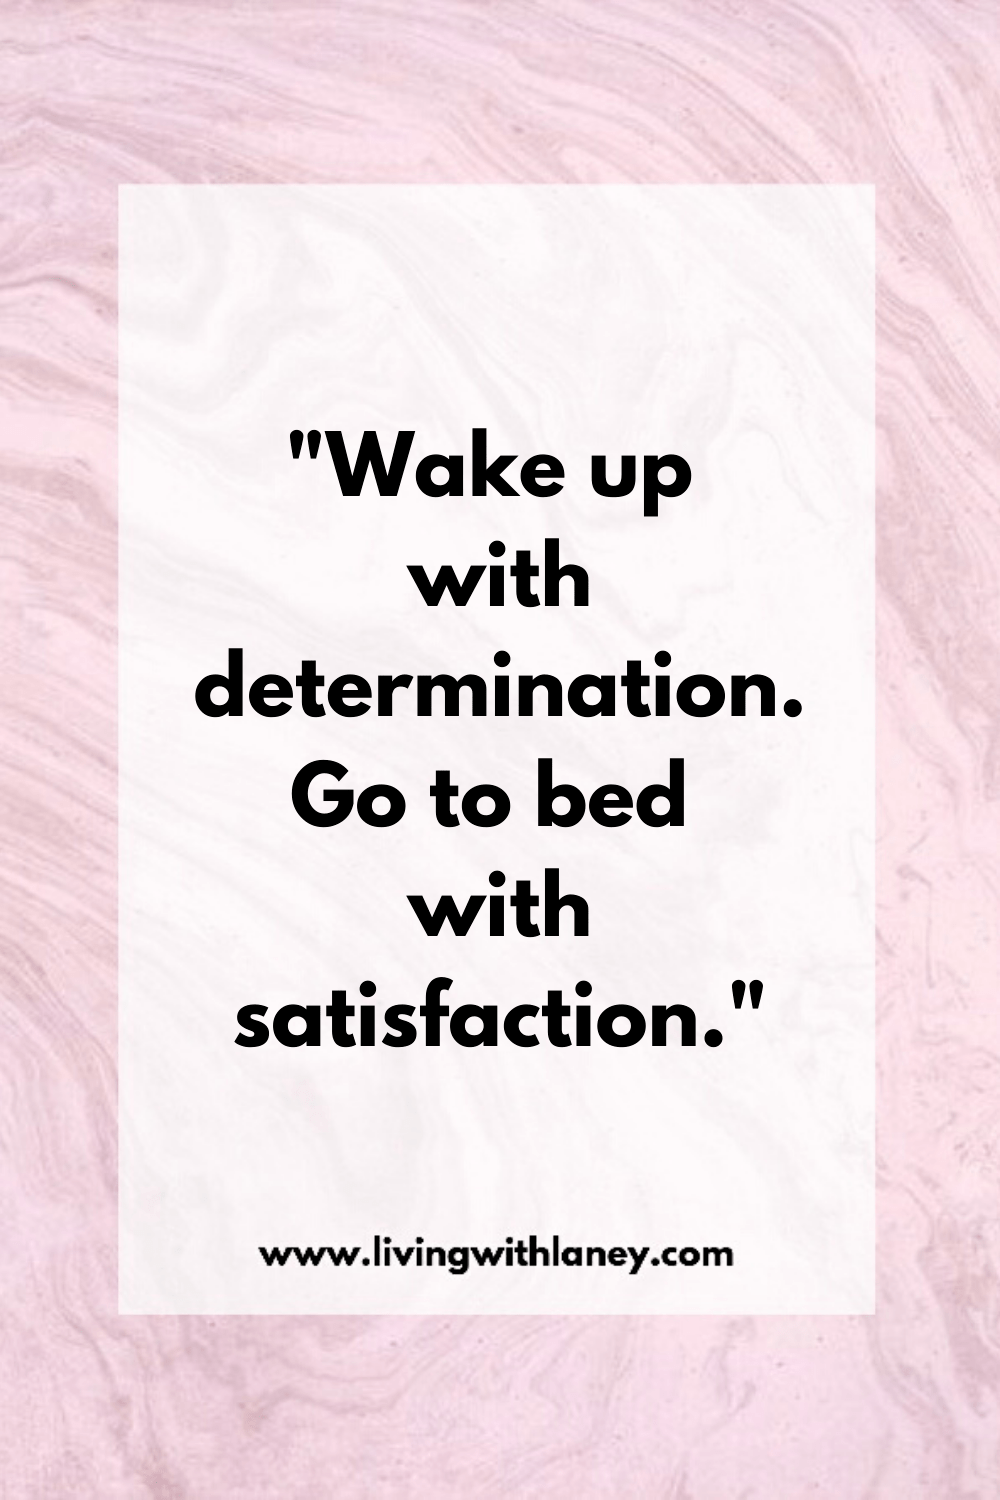 200+ Motivational Quotes That Will Change Your Life